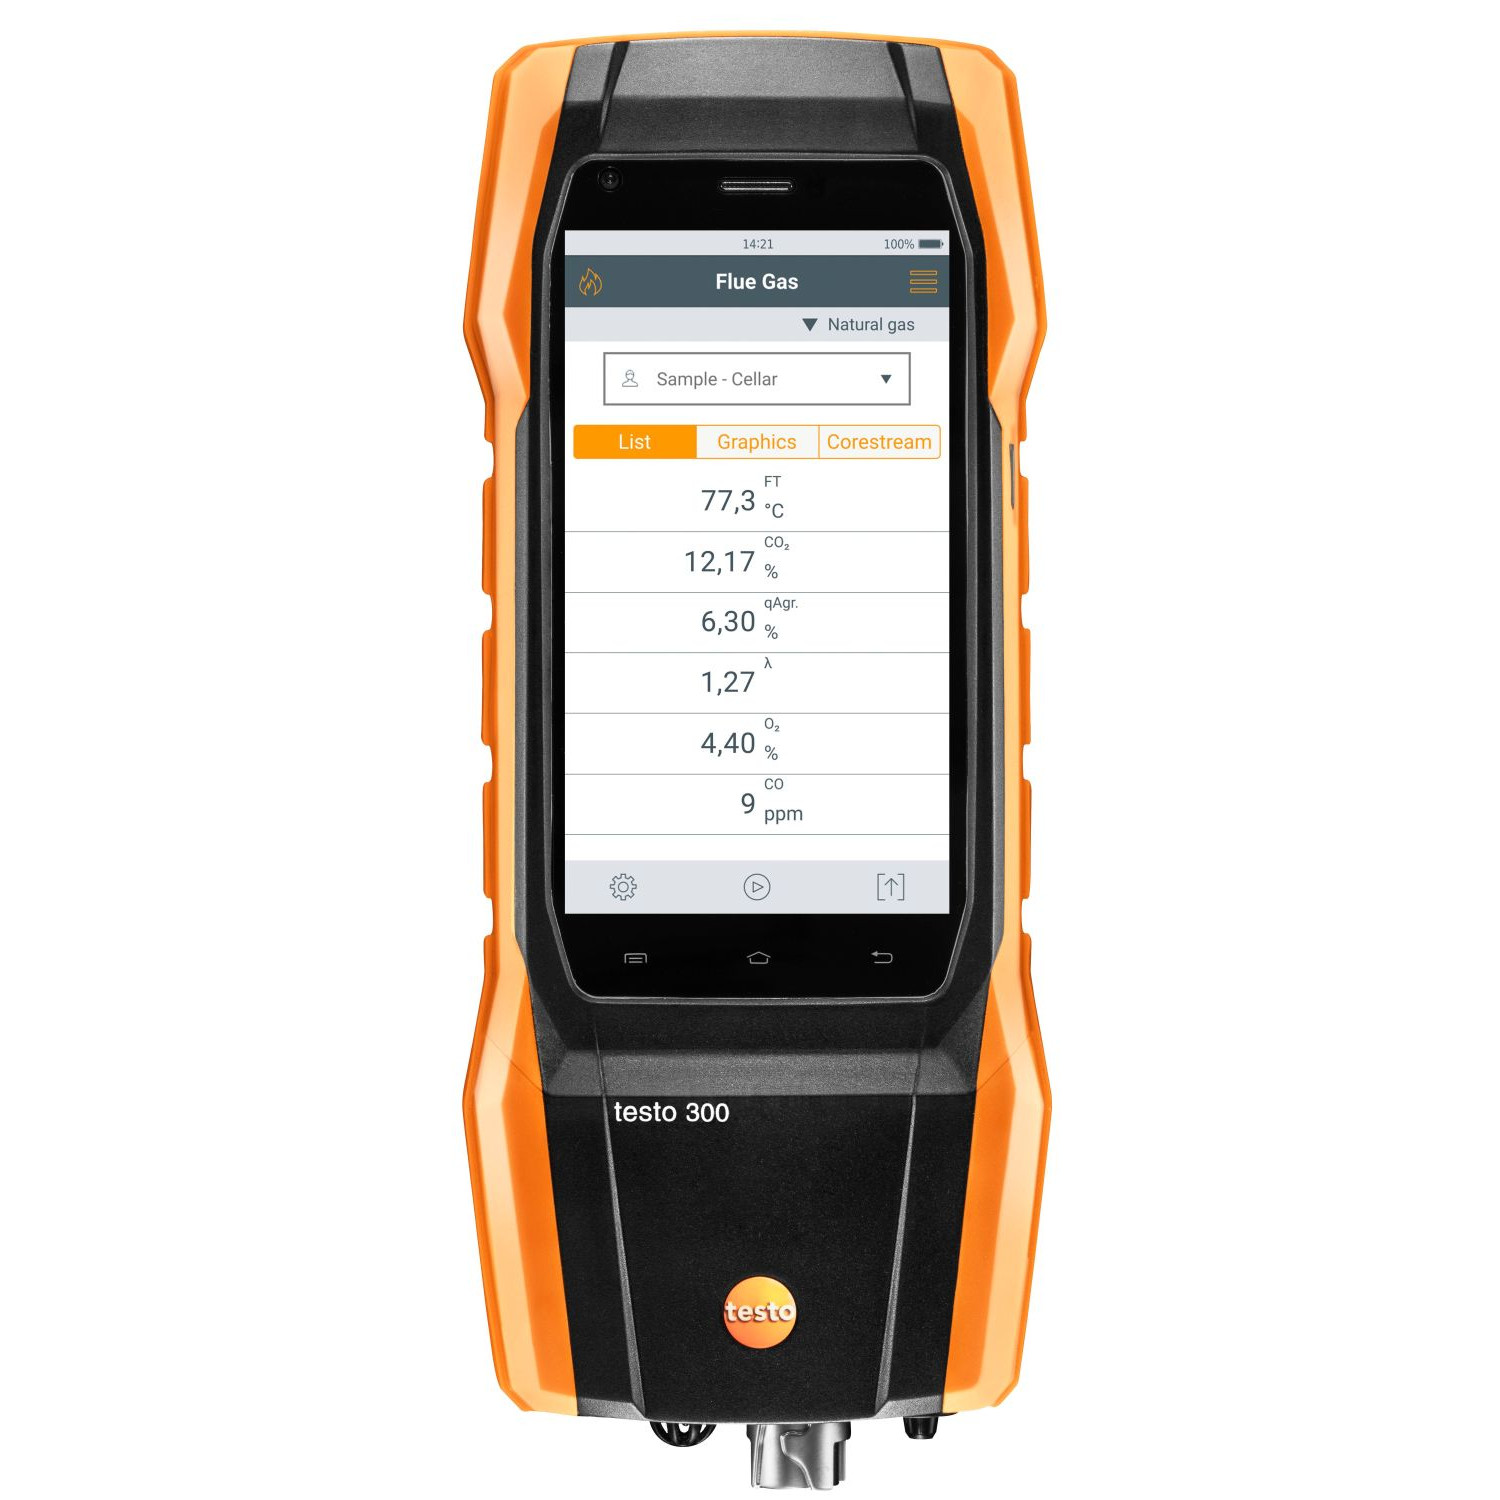 Testo 300 - Analyseur de combustion (O2, CO jusqu'à 4 000 ppm)